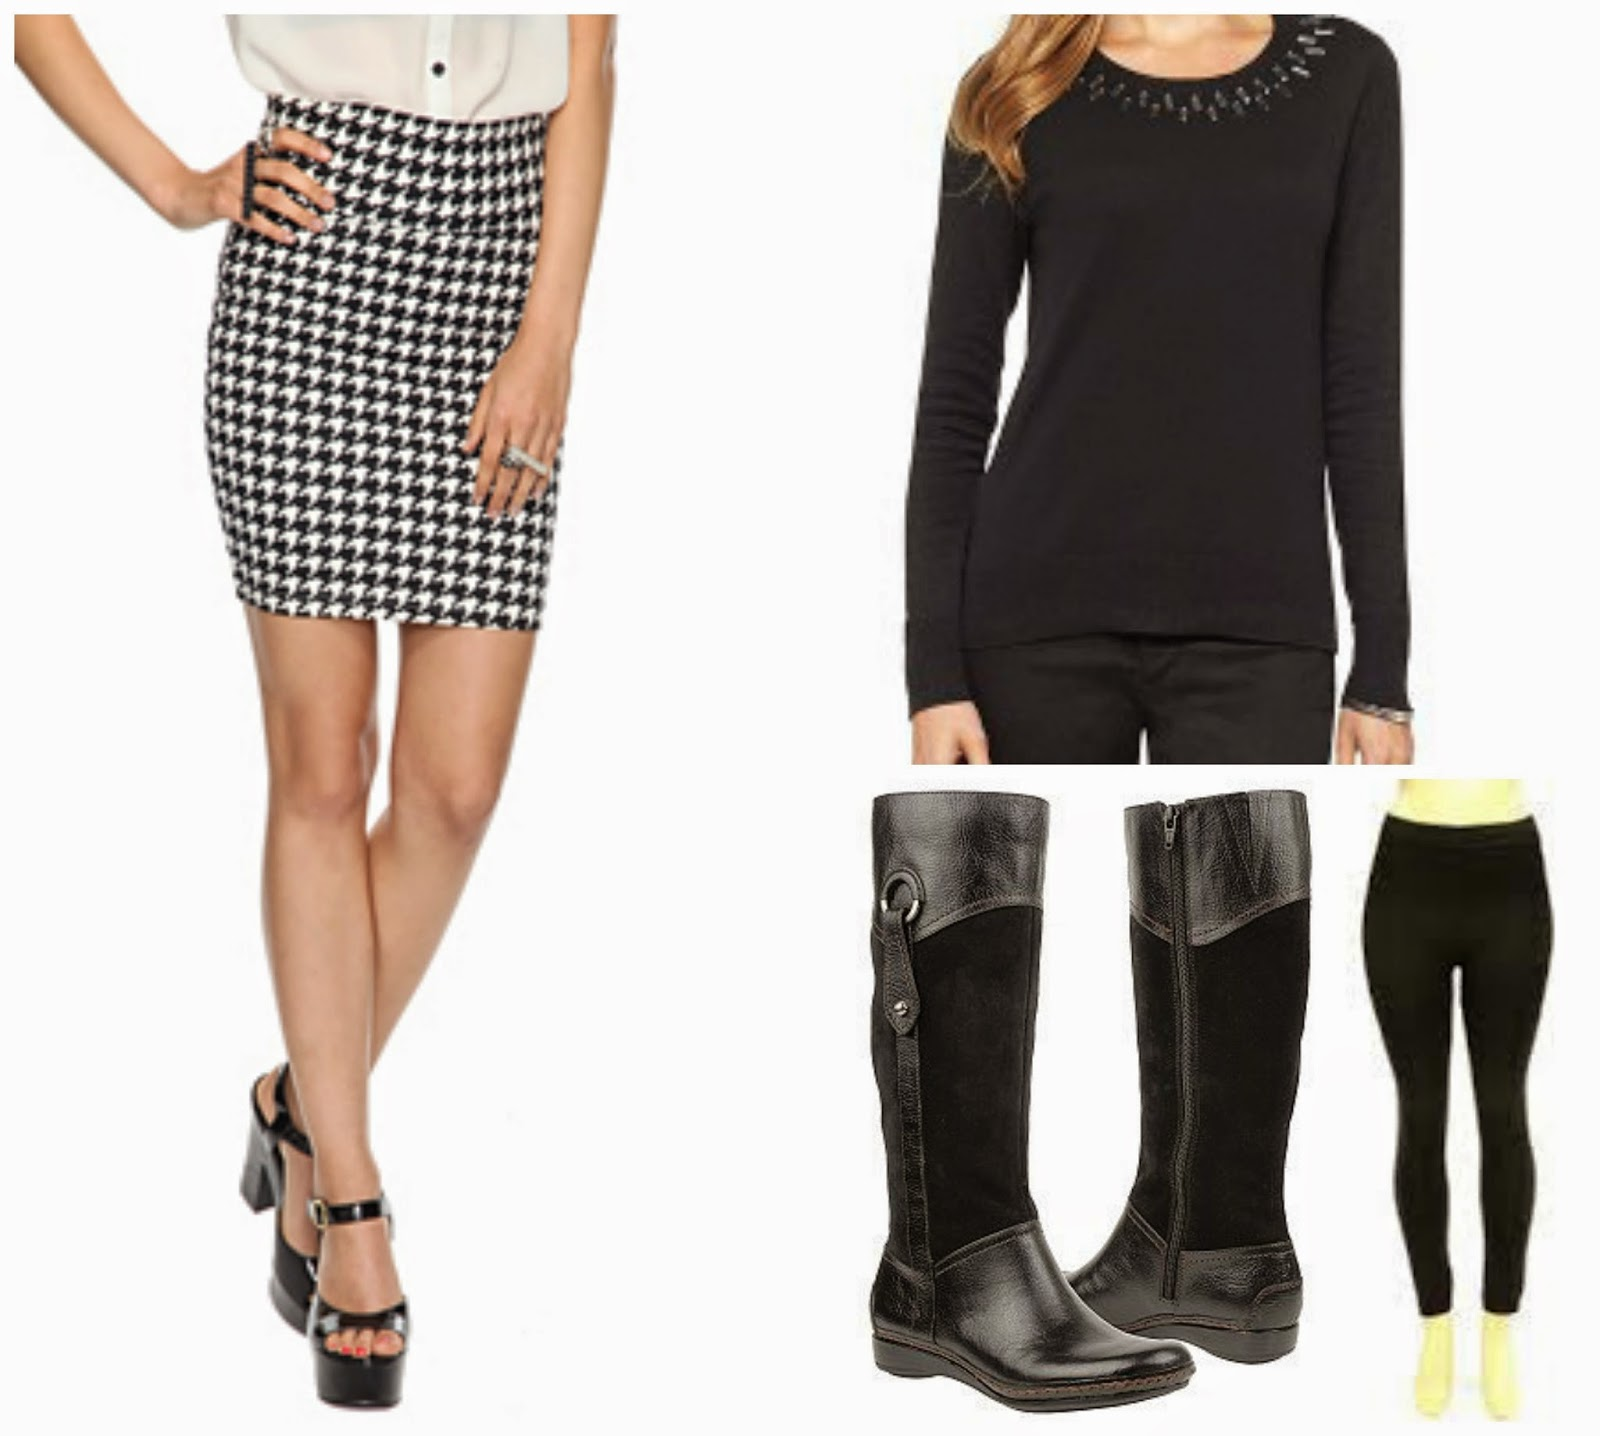 houndstooth skirt jeweled collar sweater, leggings, and boots